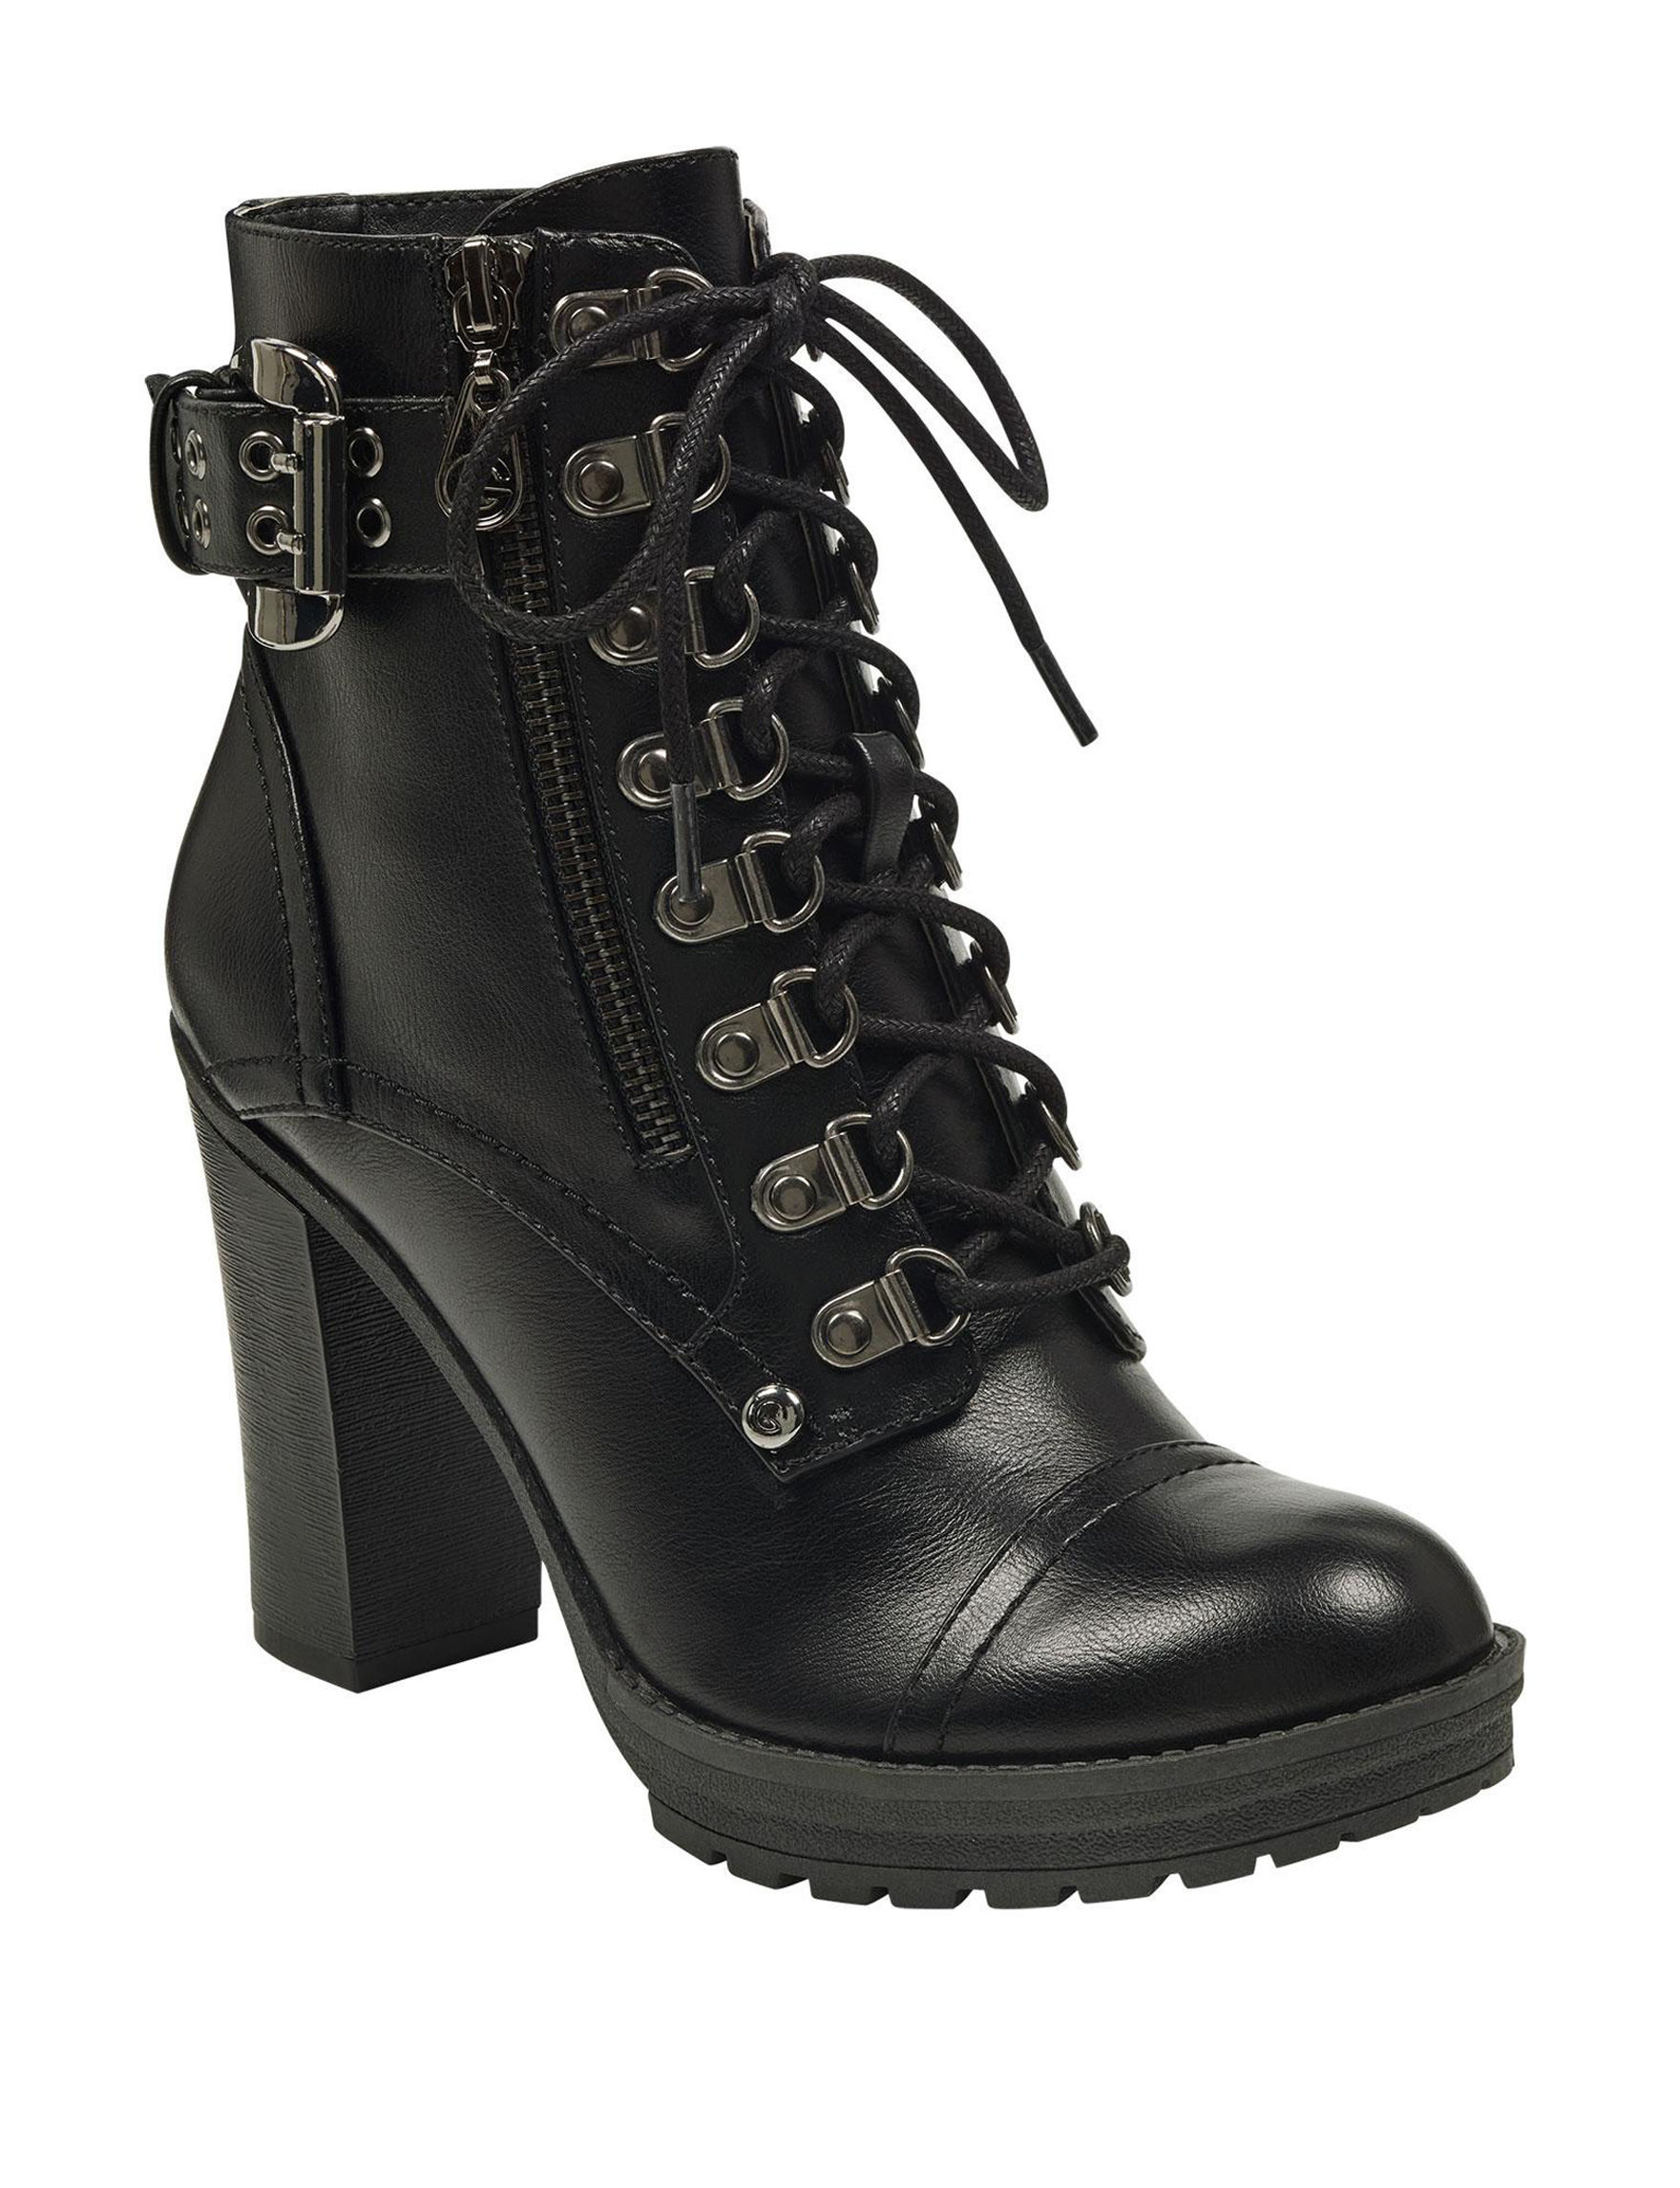 G by Guess Black Motorcycle Boots